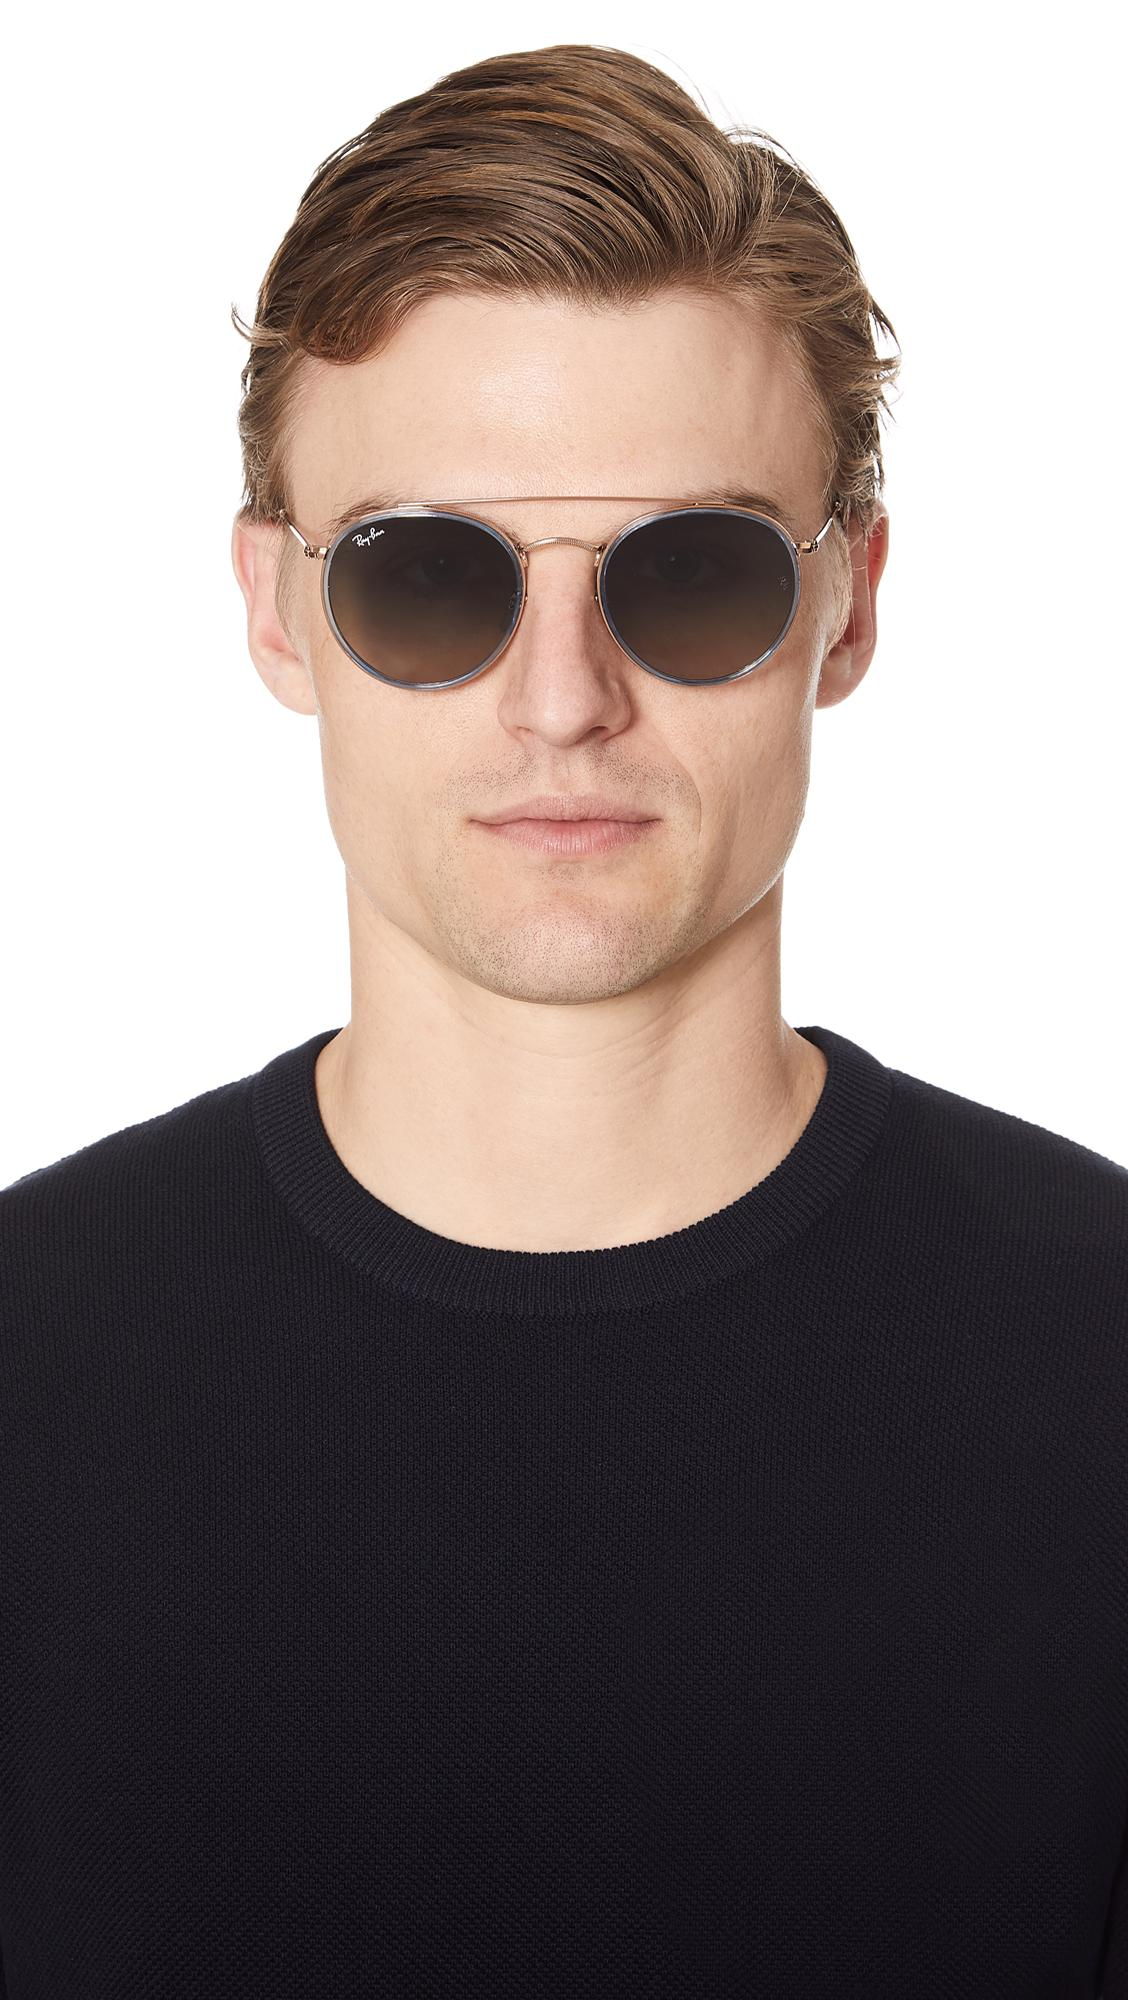 ray ban aviator sunglasses for round face